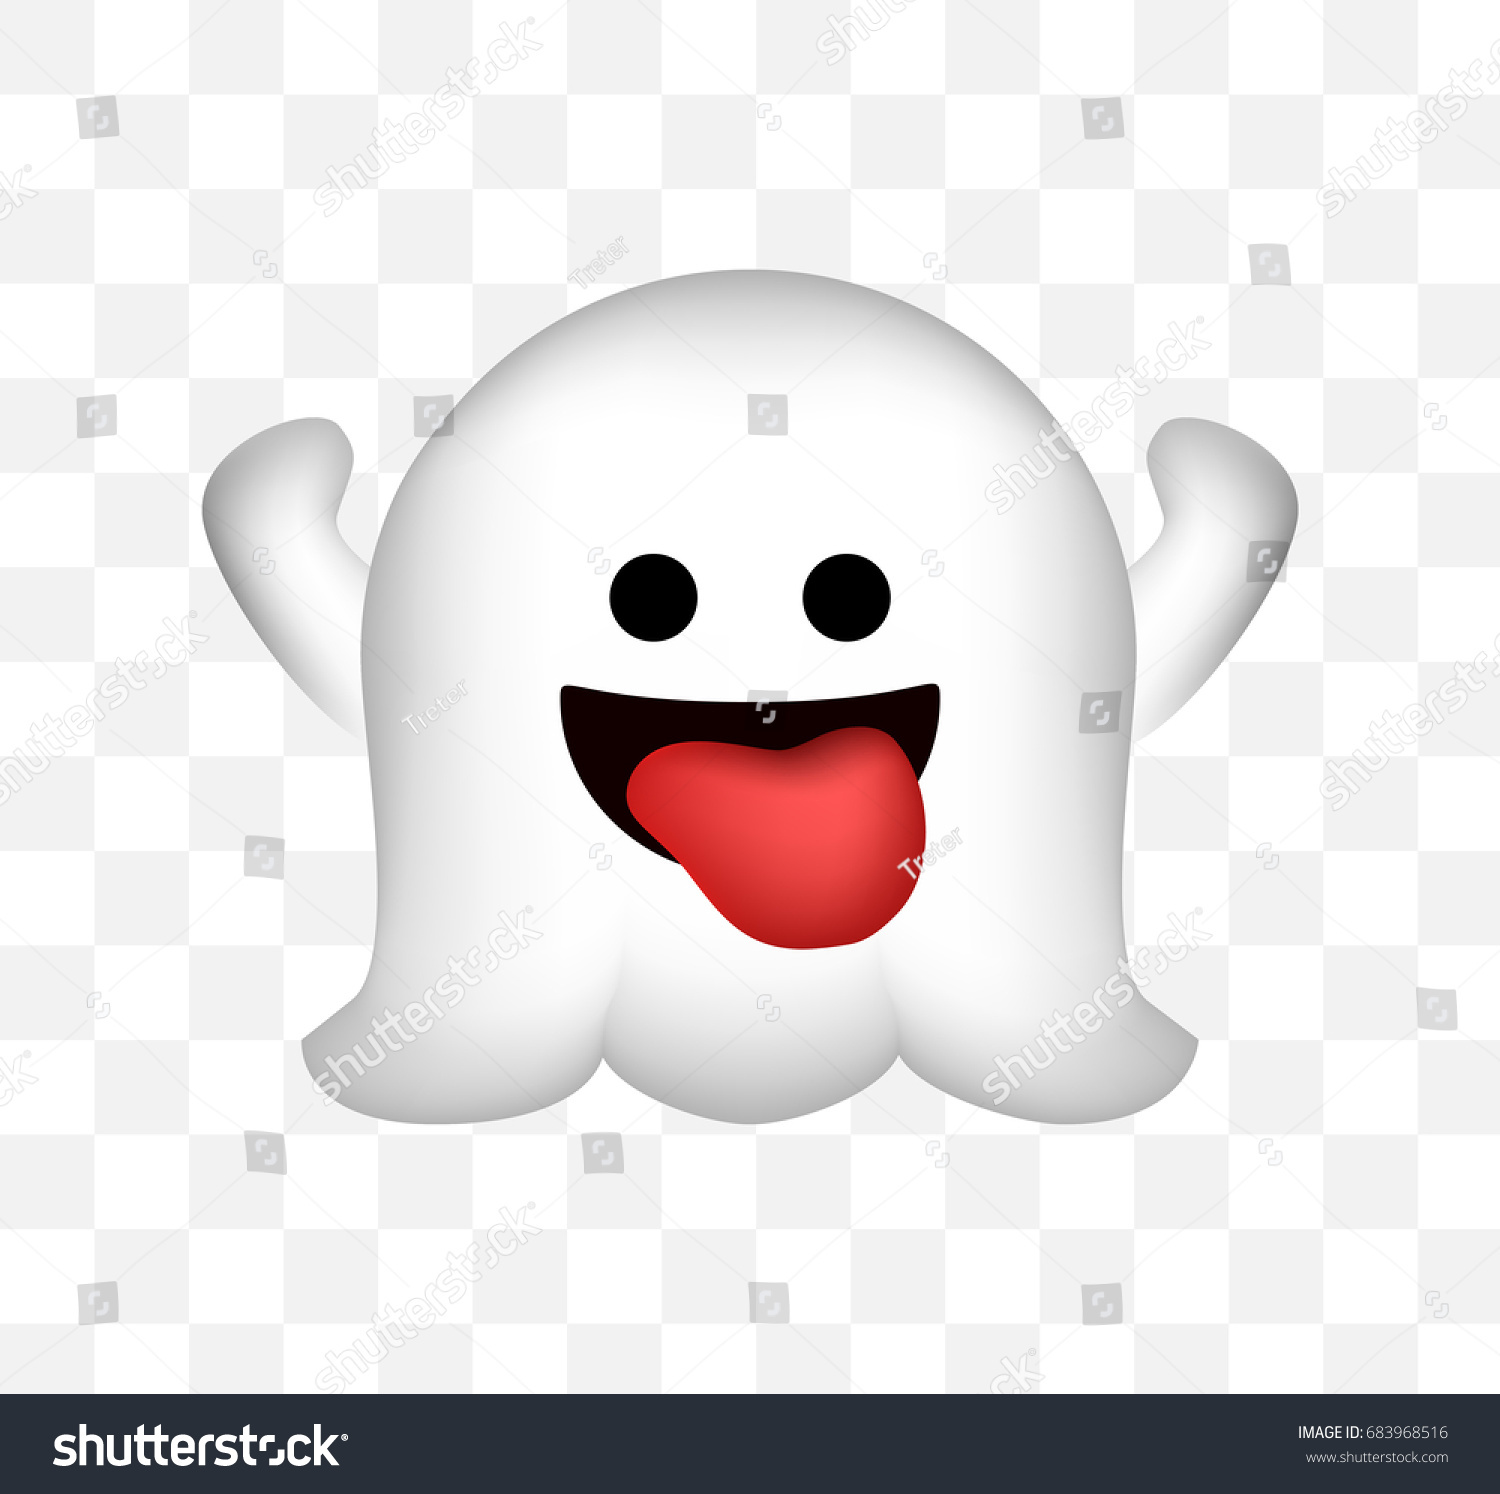 Cute Ghost Icon On Transparent Background Stock Vector ...